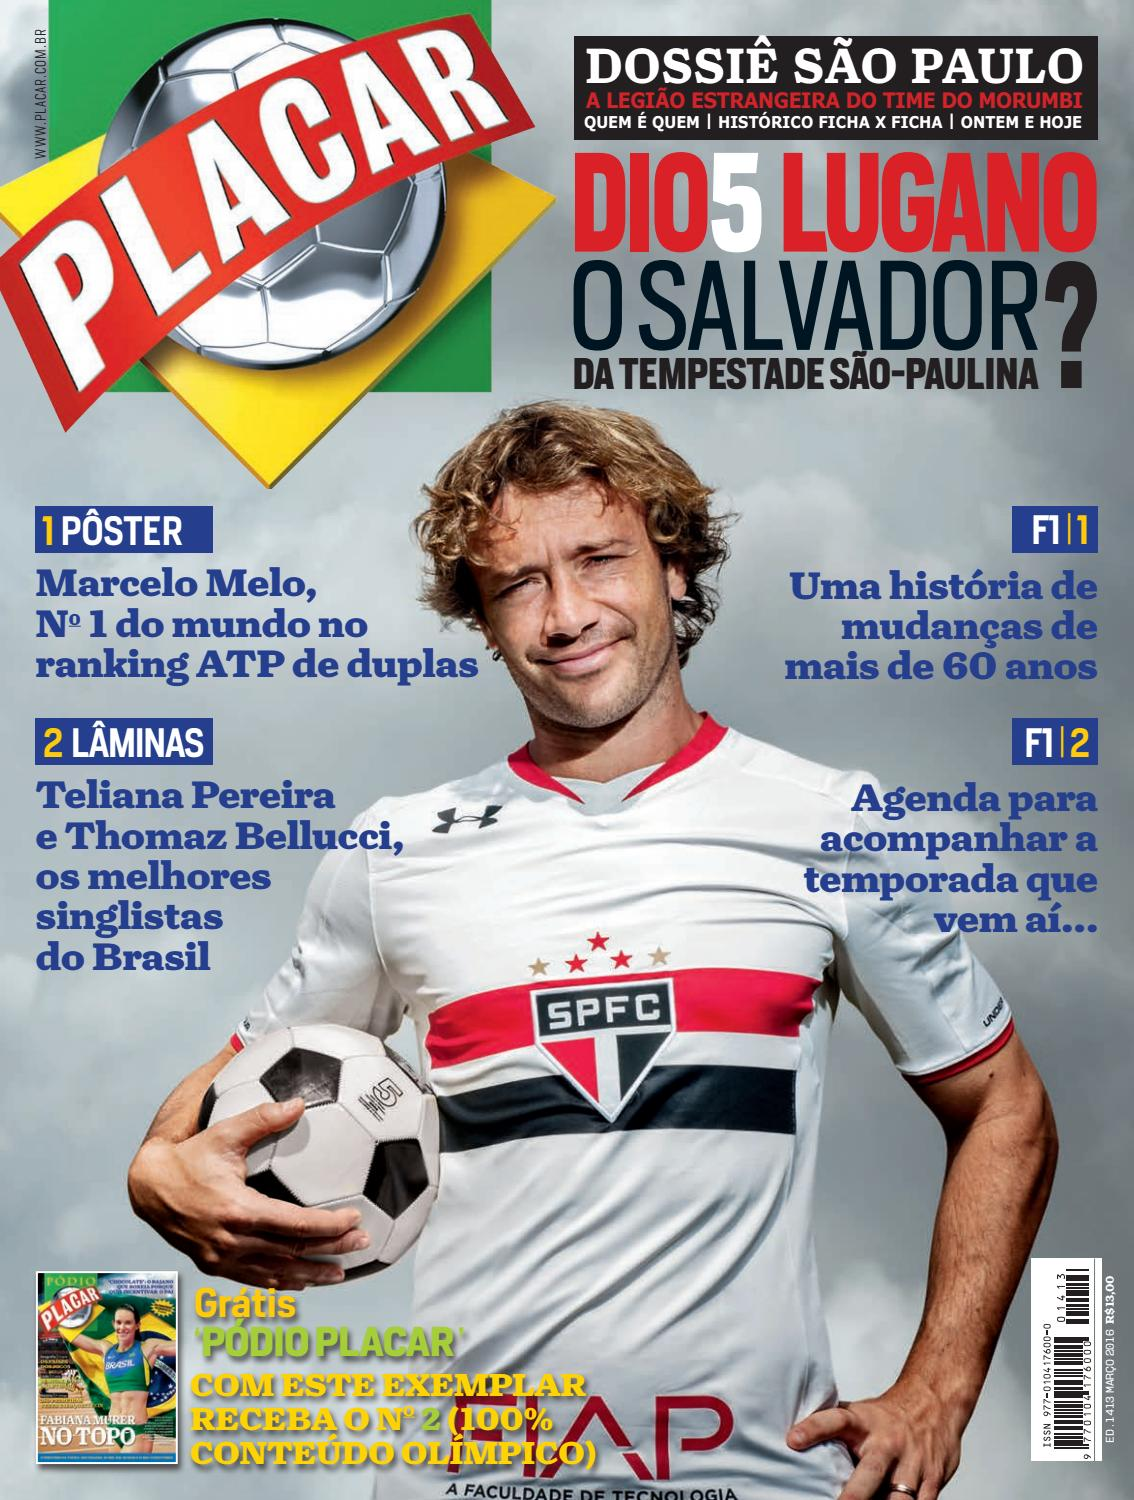 Revista Placar – Editora Caras by Revista Placar - issuu 09572c99705c6